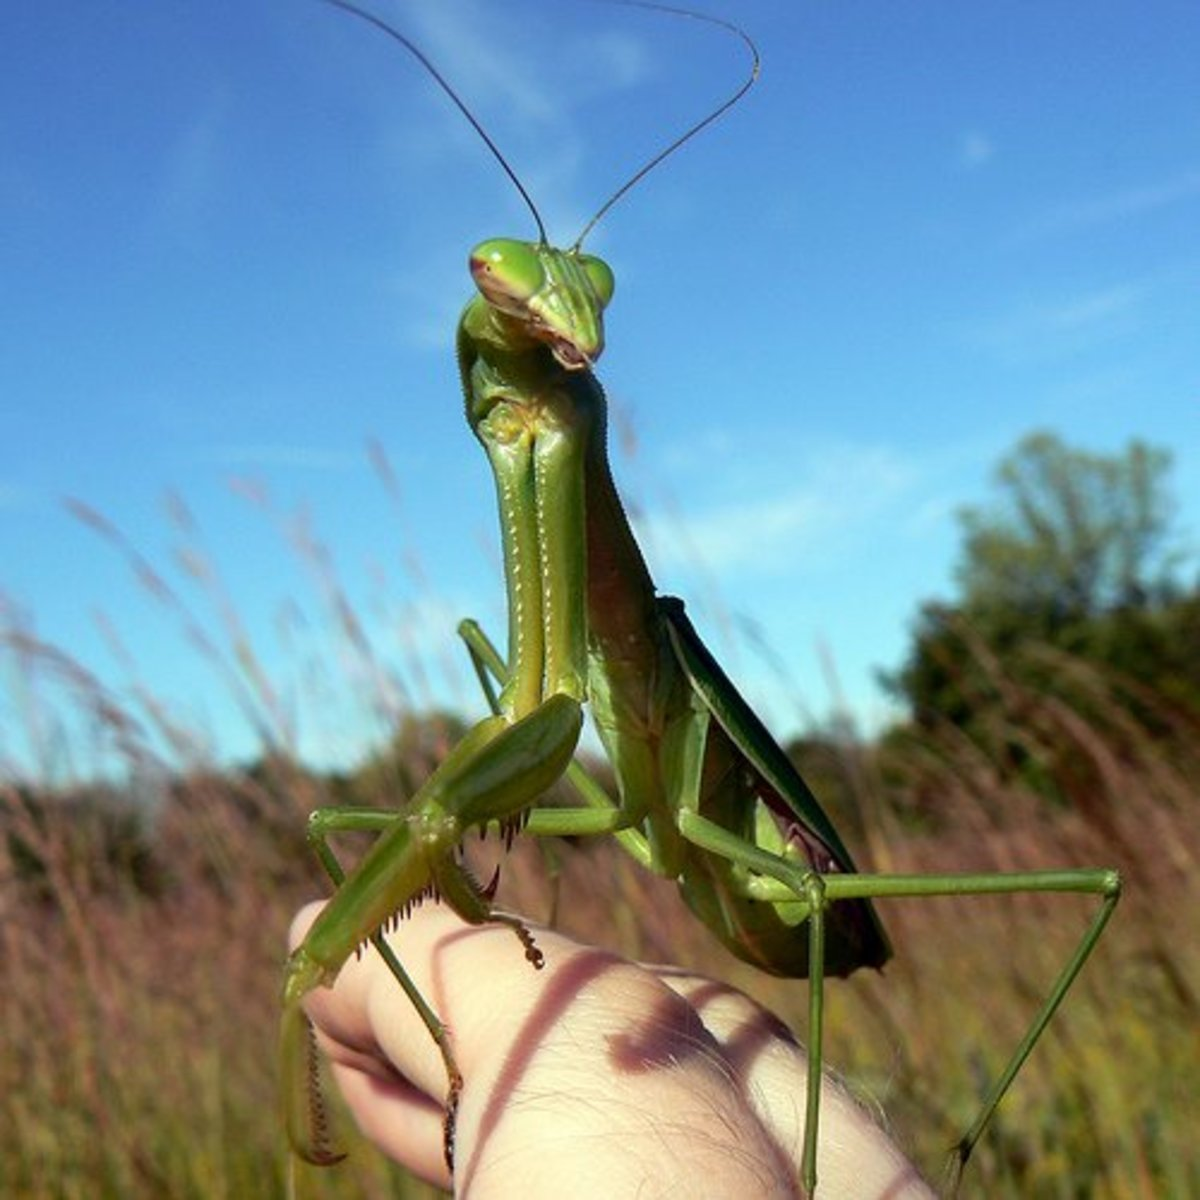 How To Care For A Pet Praying Mantis Pethelpful